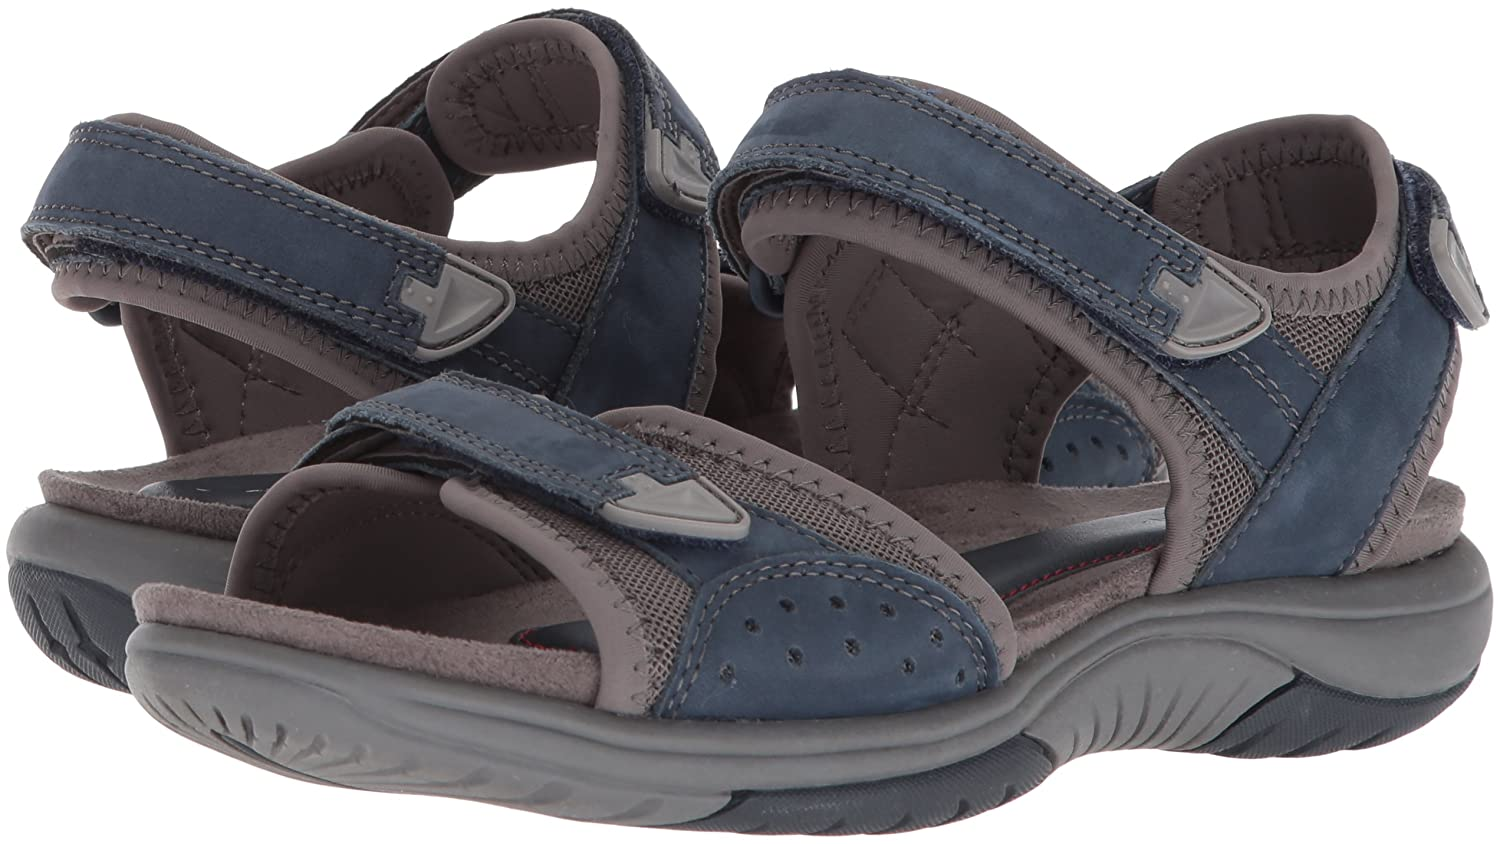 Rockport Women's Franklin Three Strap Sport Sandal B073ZTRPX5 7 B(M) US|Blue